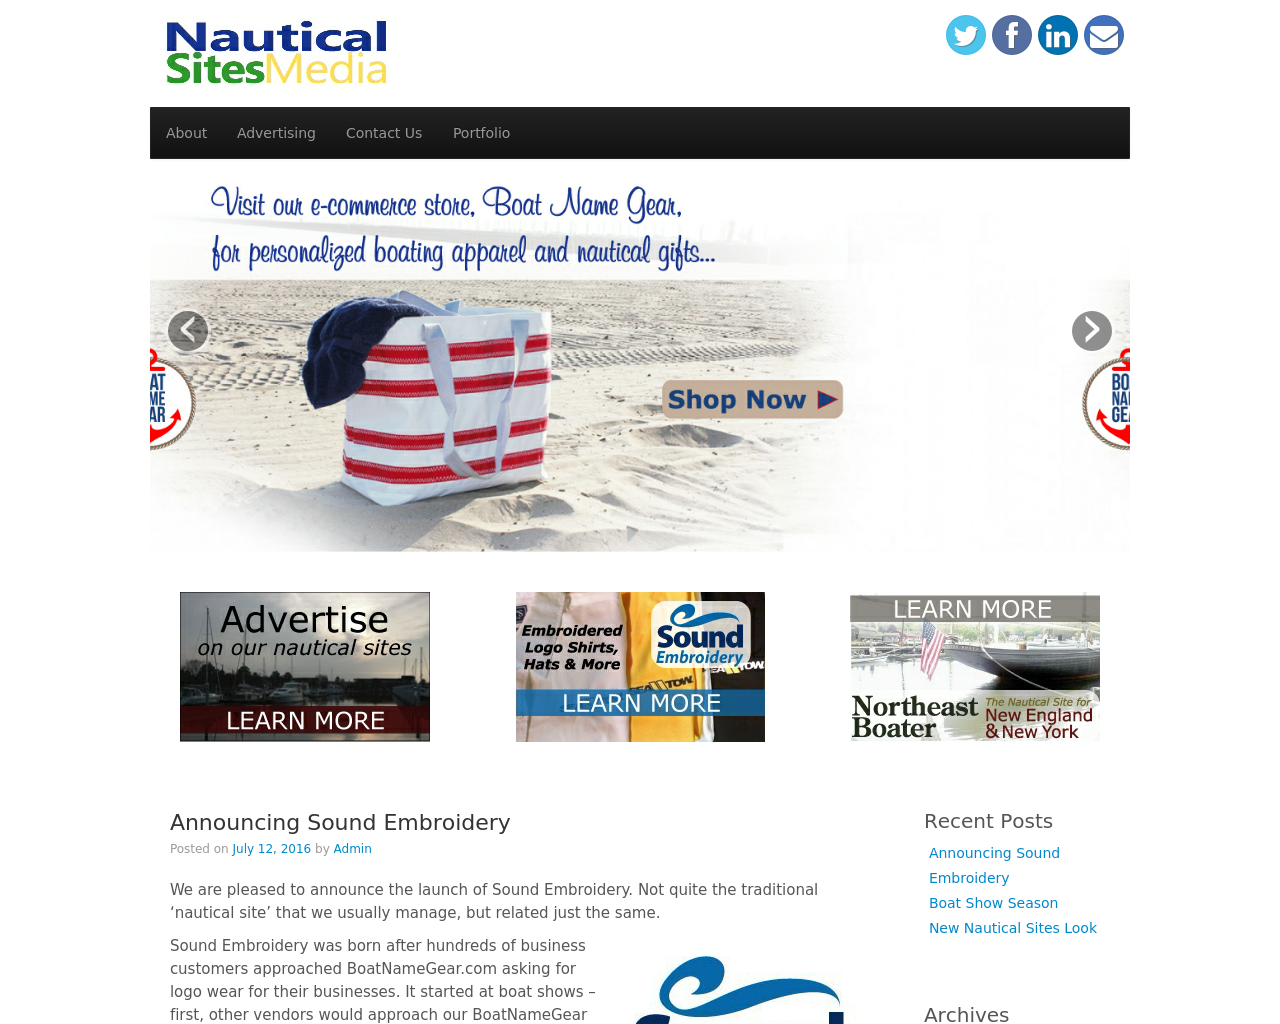 Nautical-Sites-Media-Advertising-Reviews-Pricing